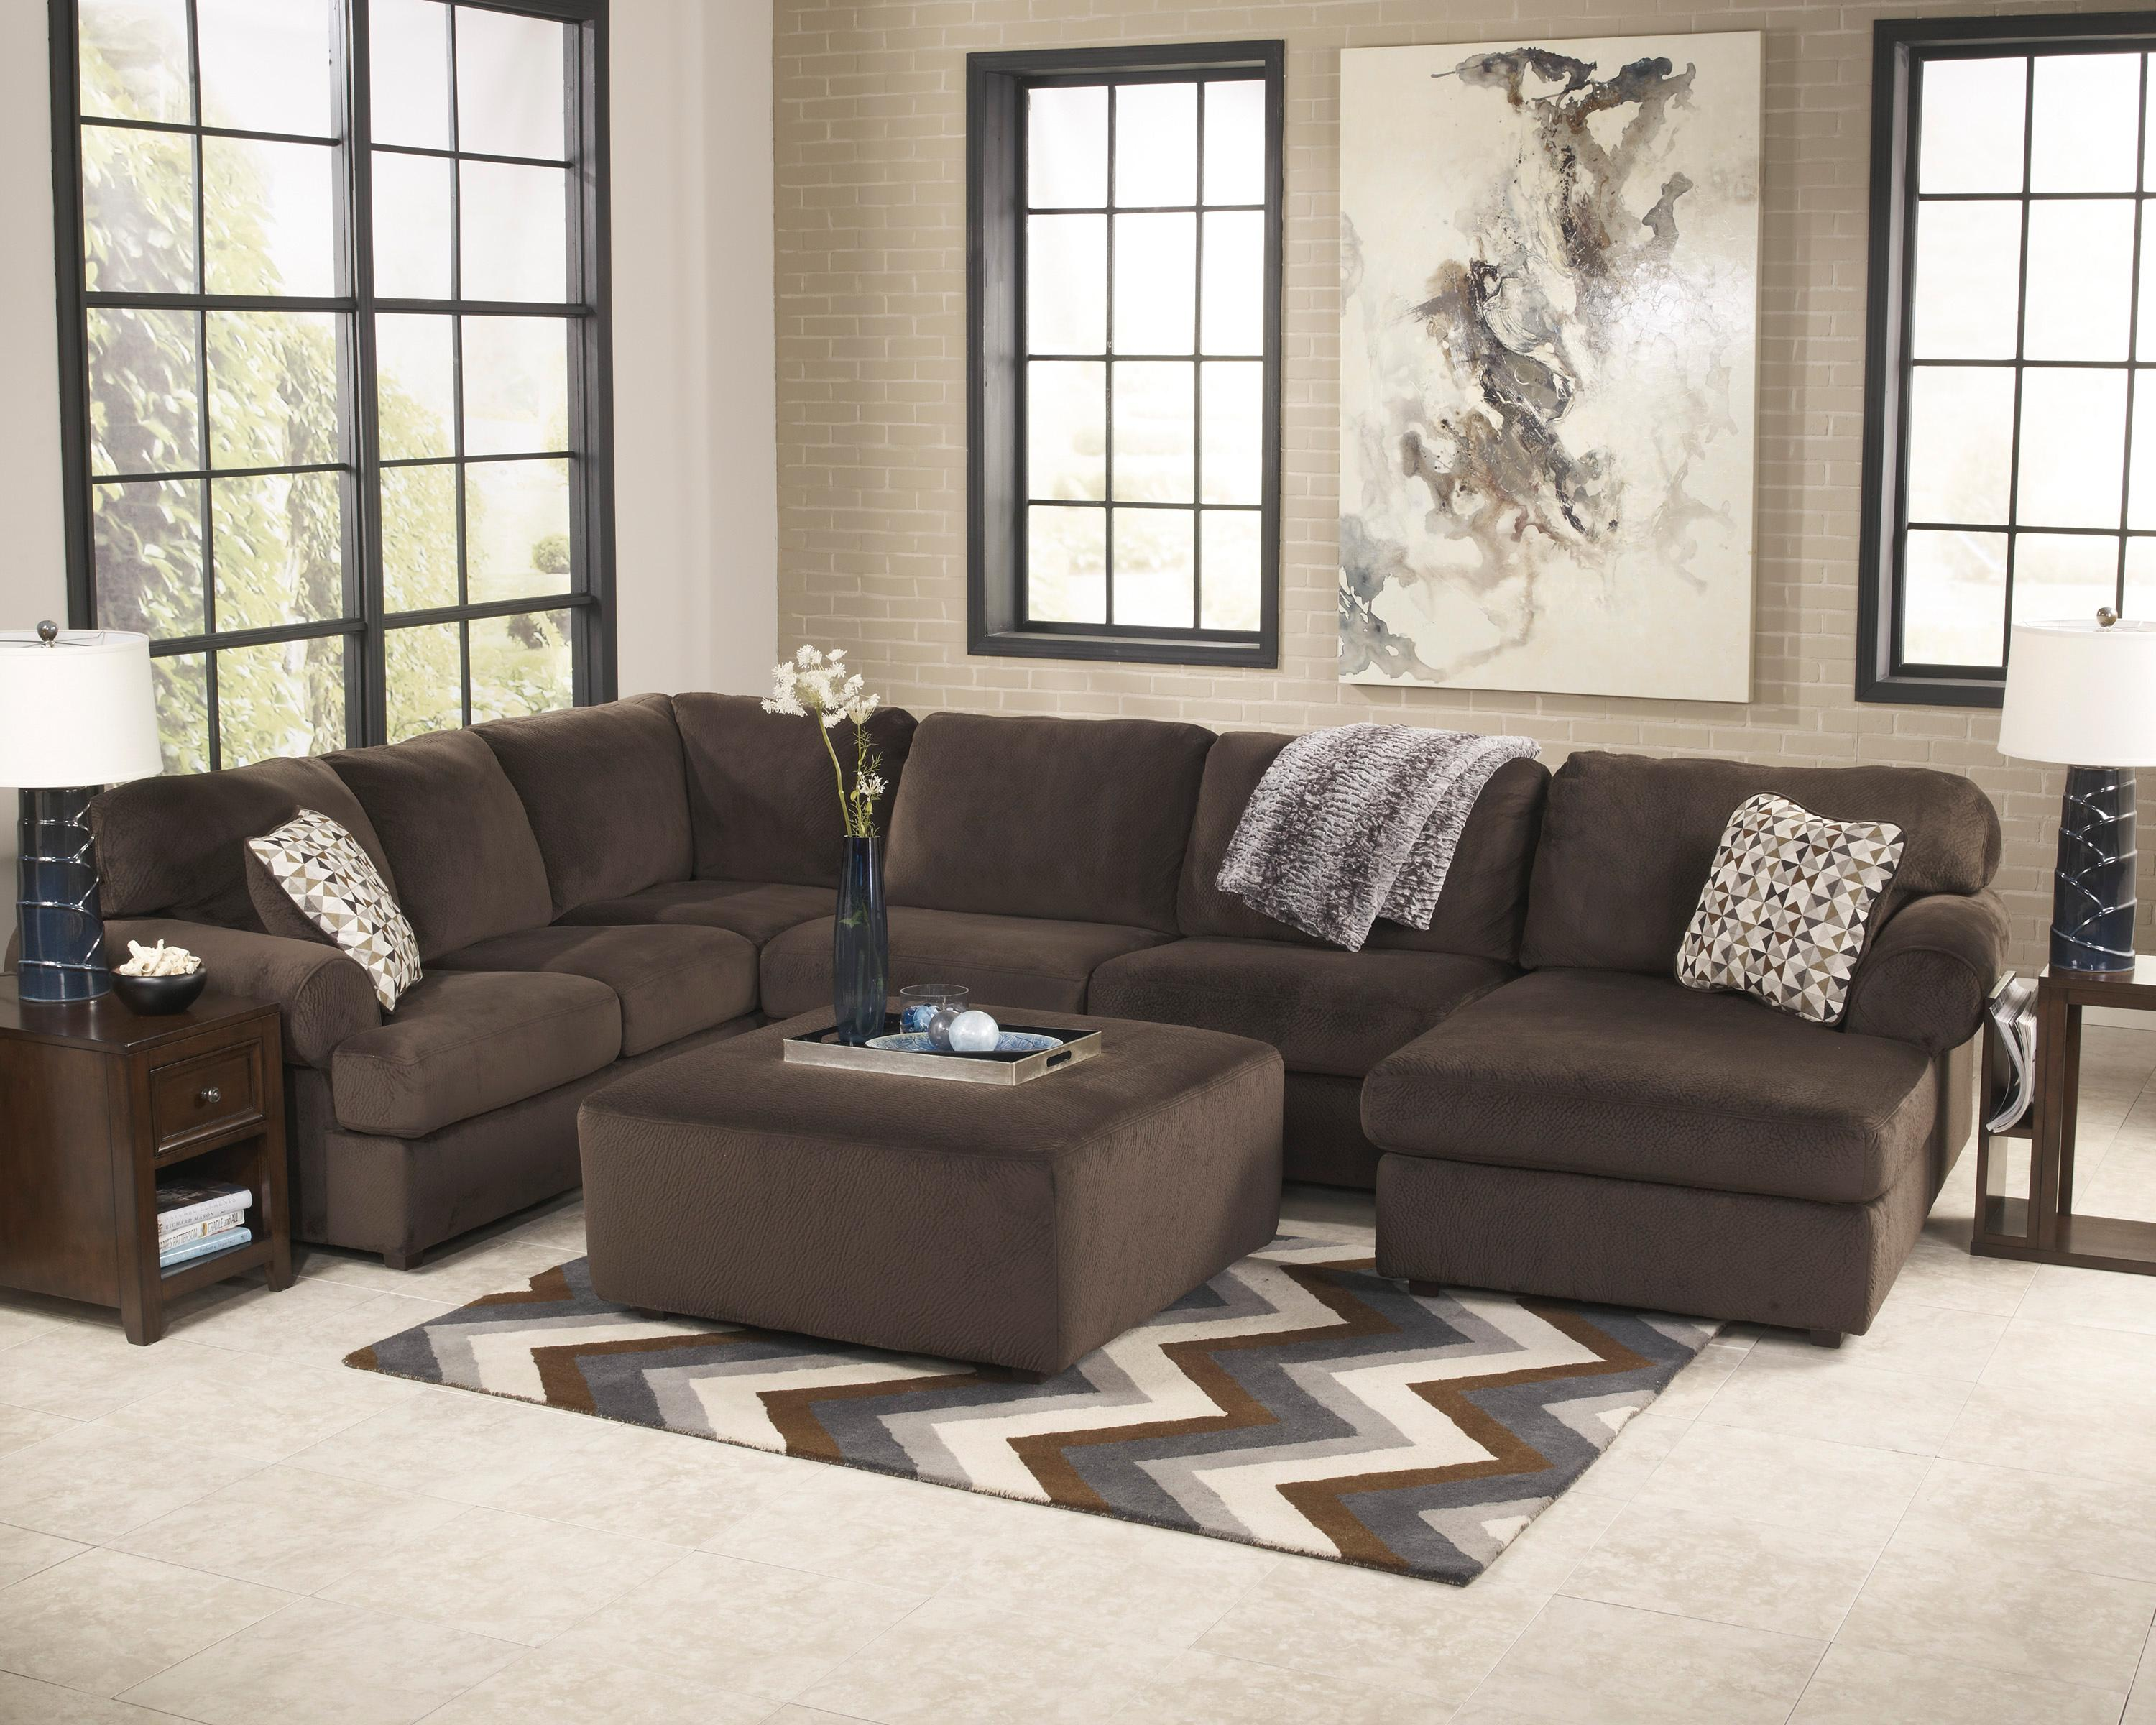 Signature Design by Ashley Jessa Place  - Chocolate Stationary Living Room Group - Item Number: 39804 Living Room Group 1